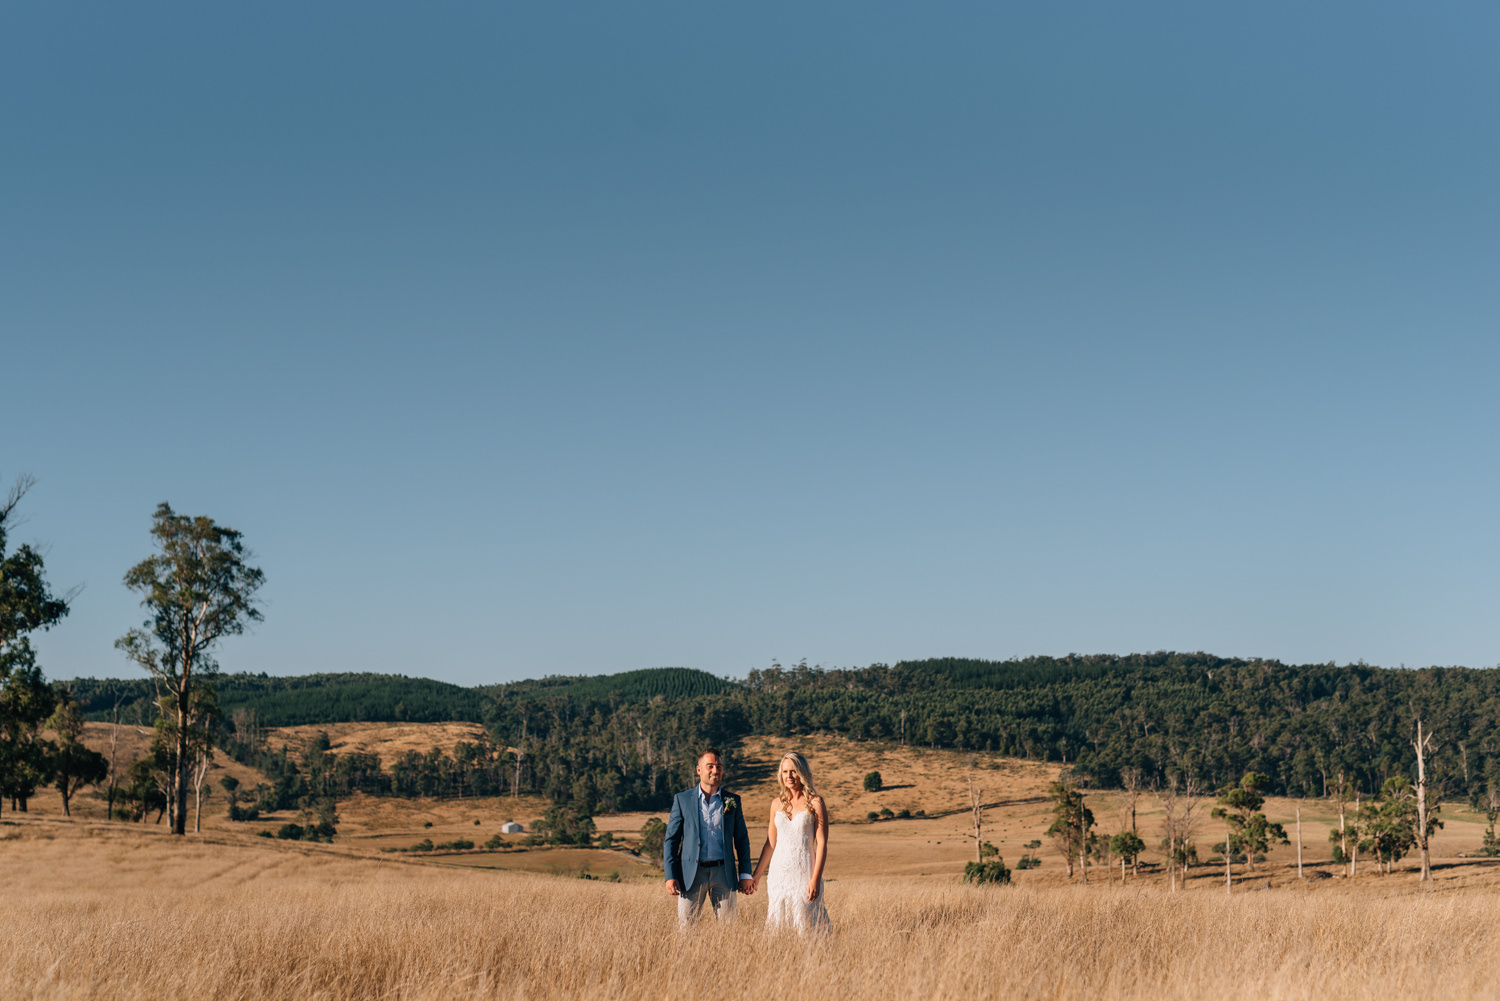 Launceston-Wedding-Photographer-81.jpg